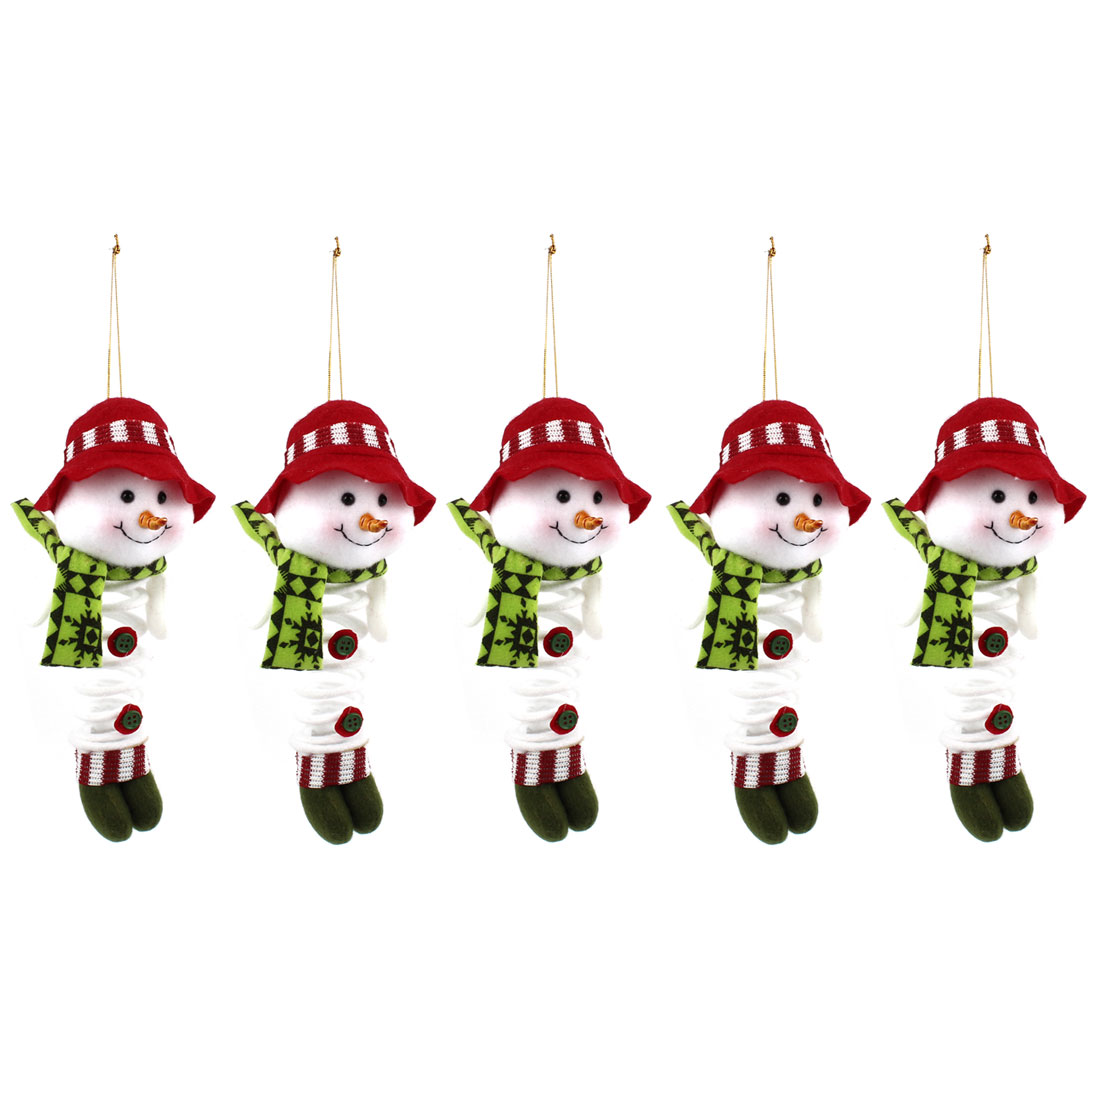 Scarf Cap Accent Xmas Snowman Pendant Red White Green 5pcs for Door Christmas Tree Hanging Decor